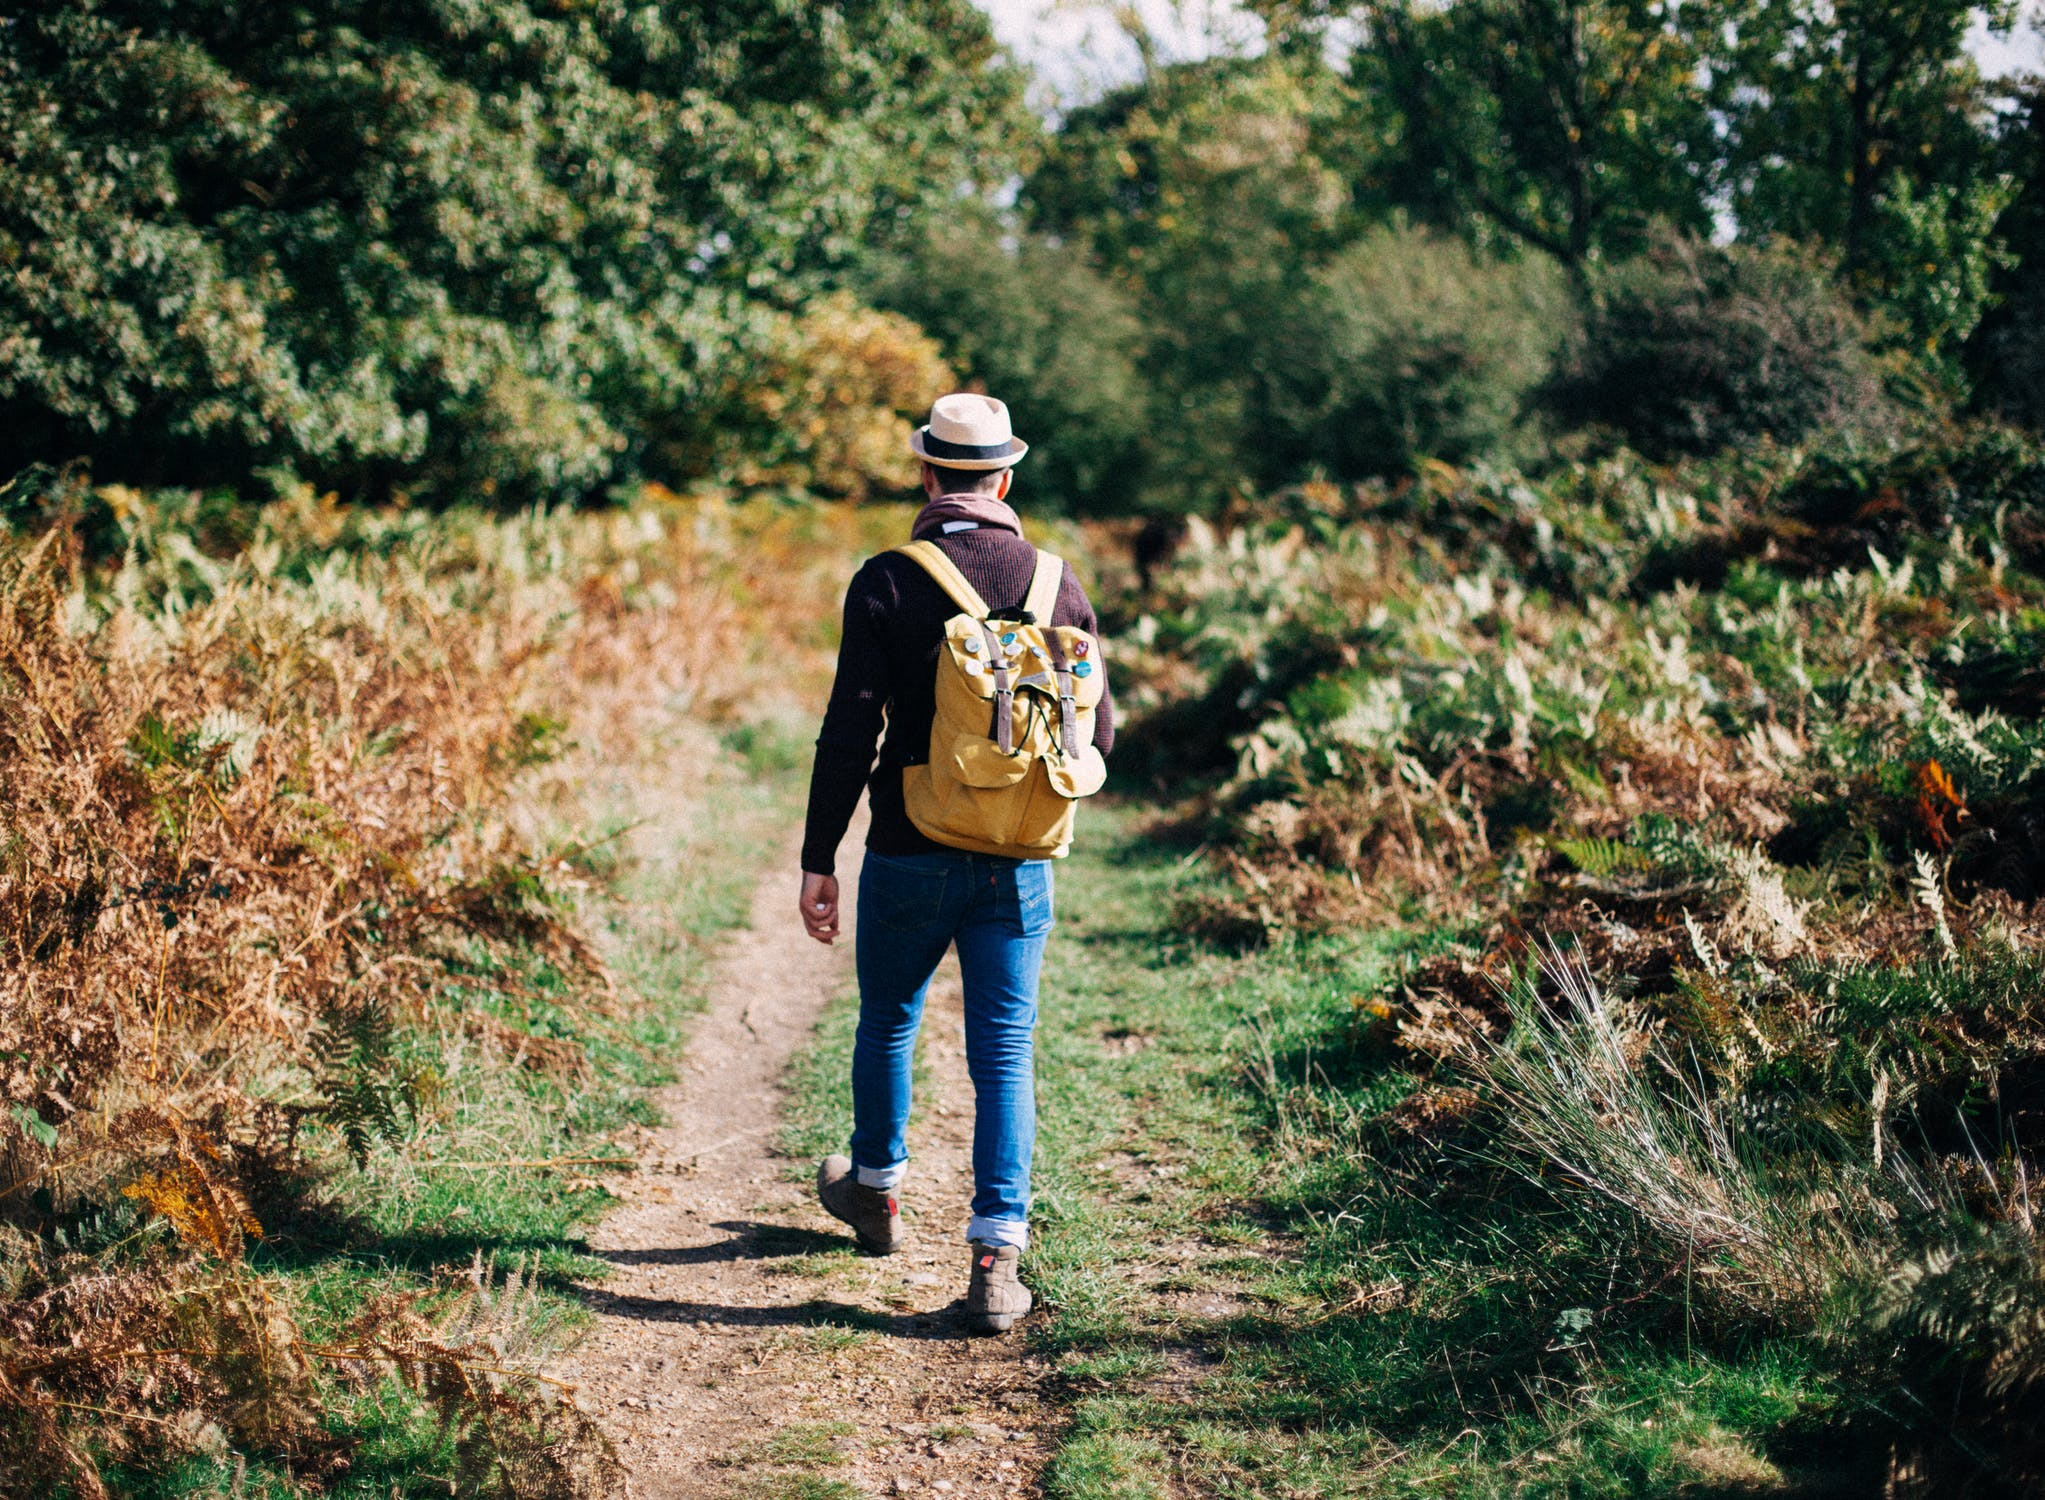 The Top 10 UK Walking Blogs 2017